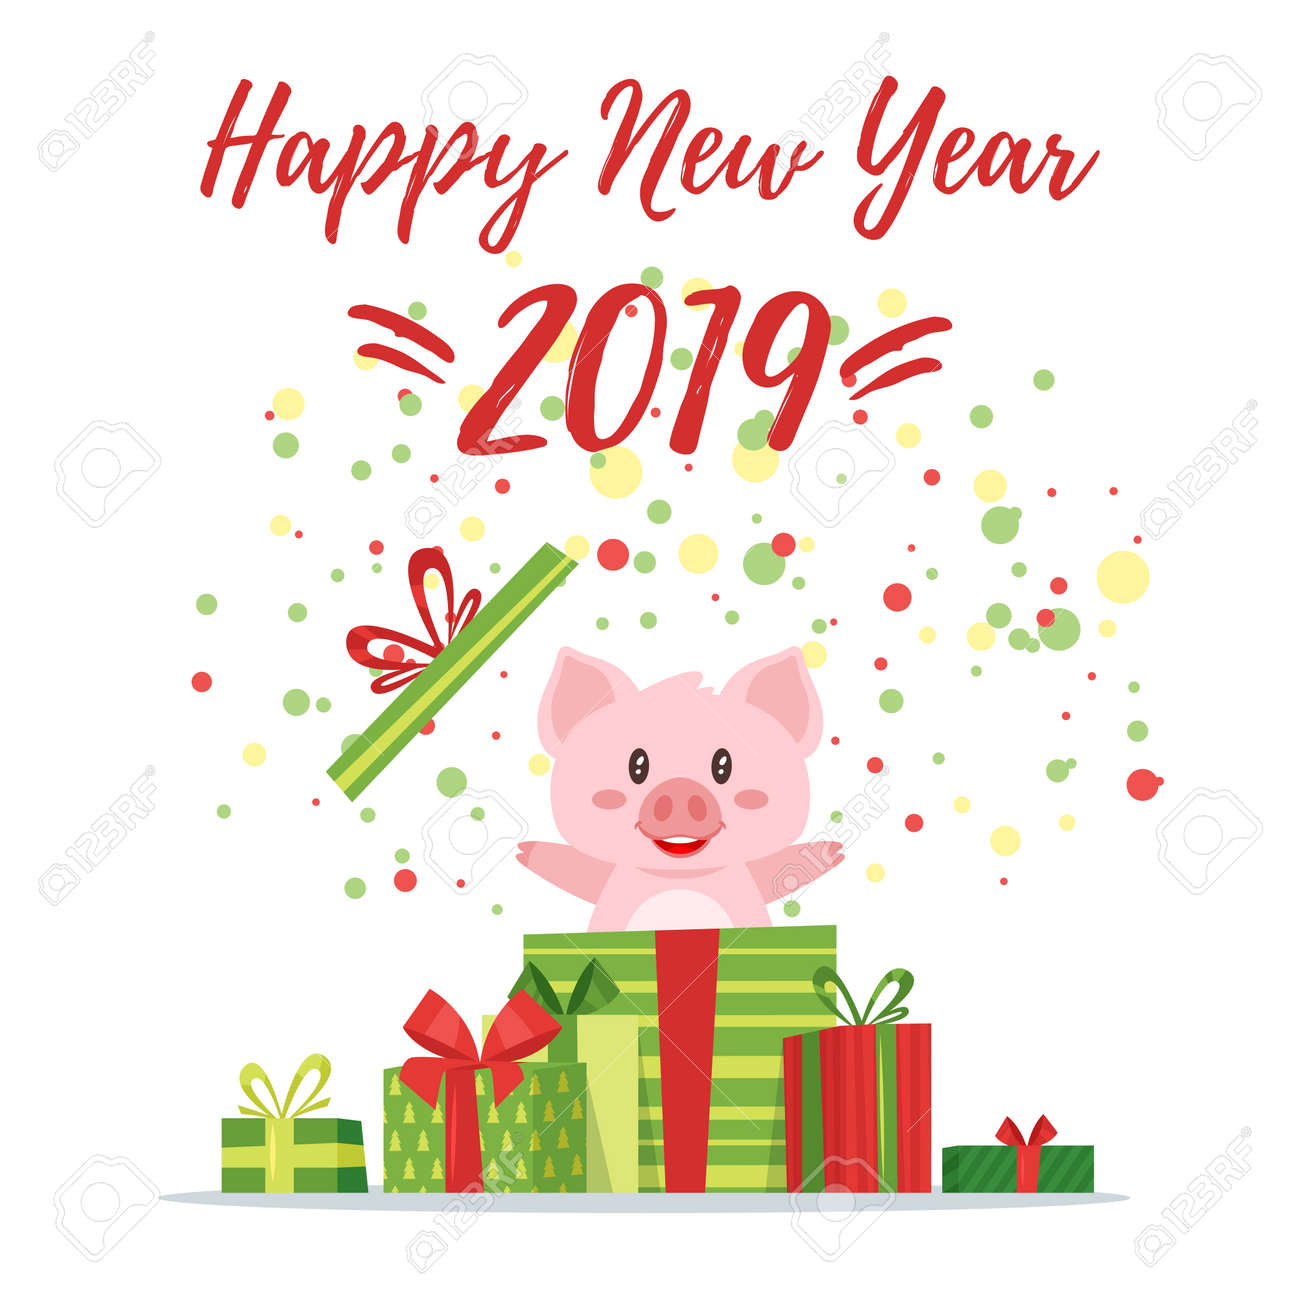 New years eve cartoon images 2019 free